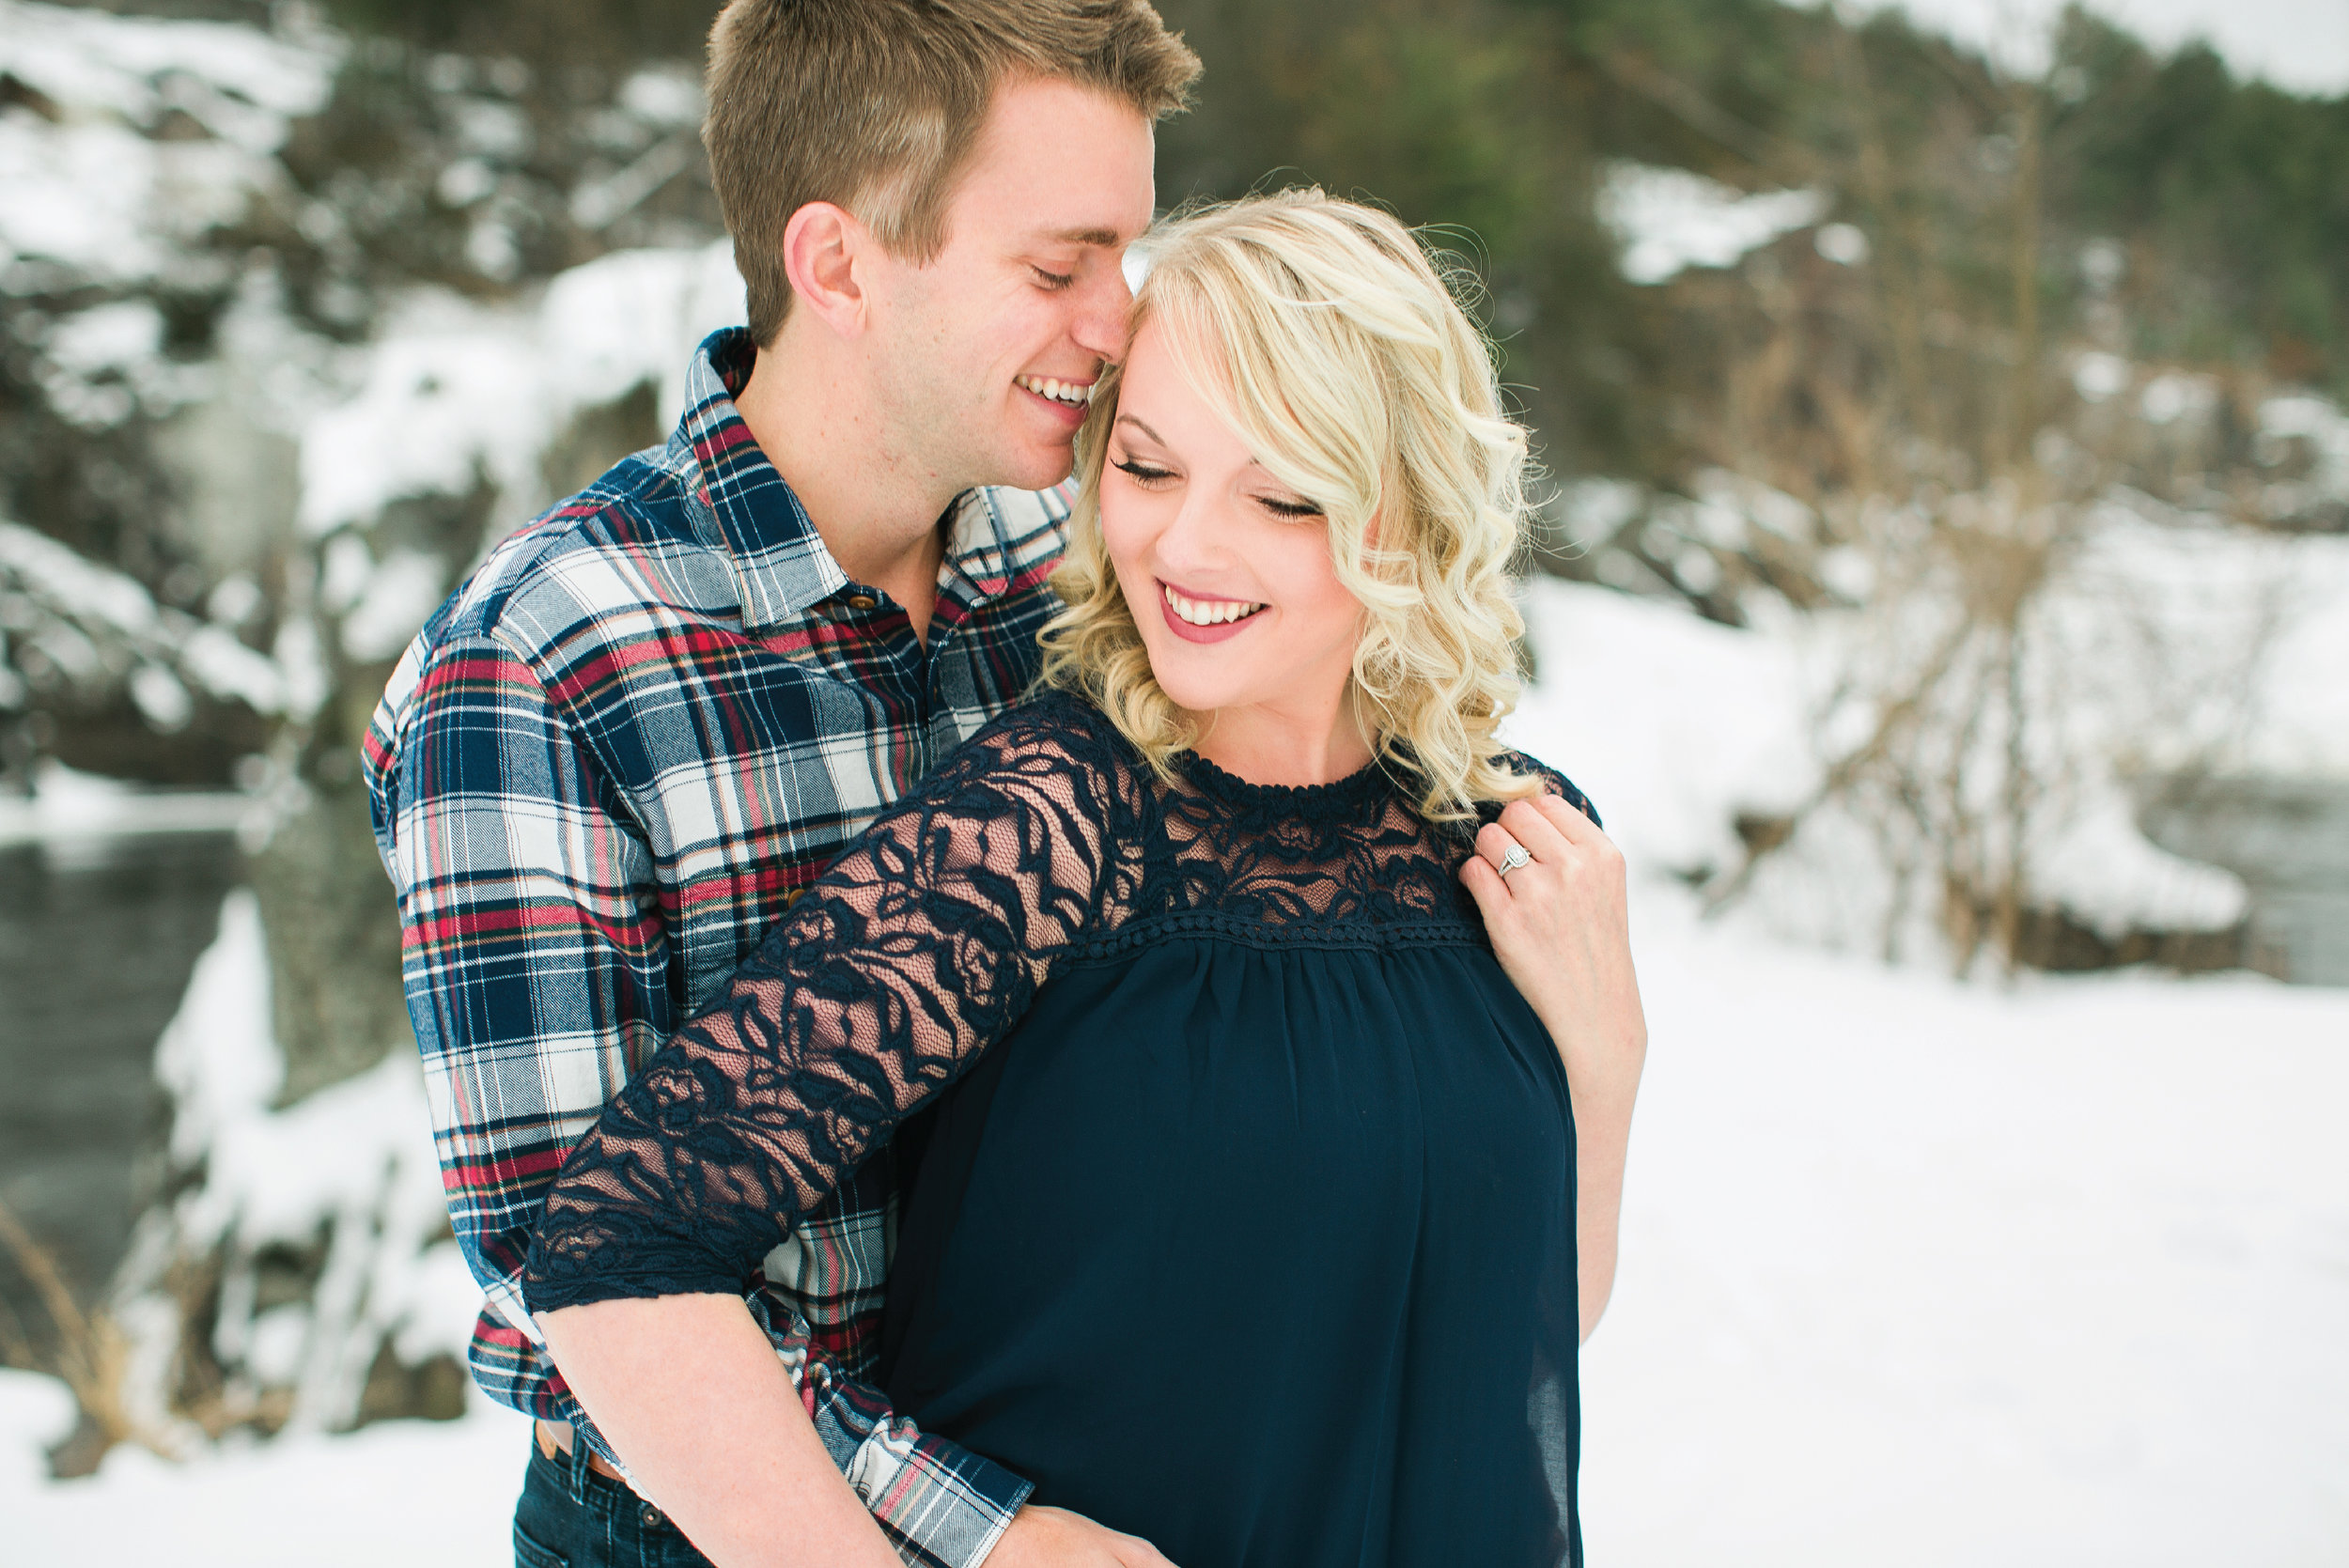 Minnesota snowy winter engagement photos in Taylors Falls Minnesota laughing in navy lace and plaid